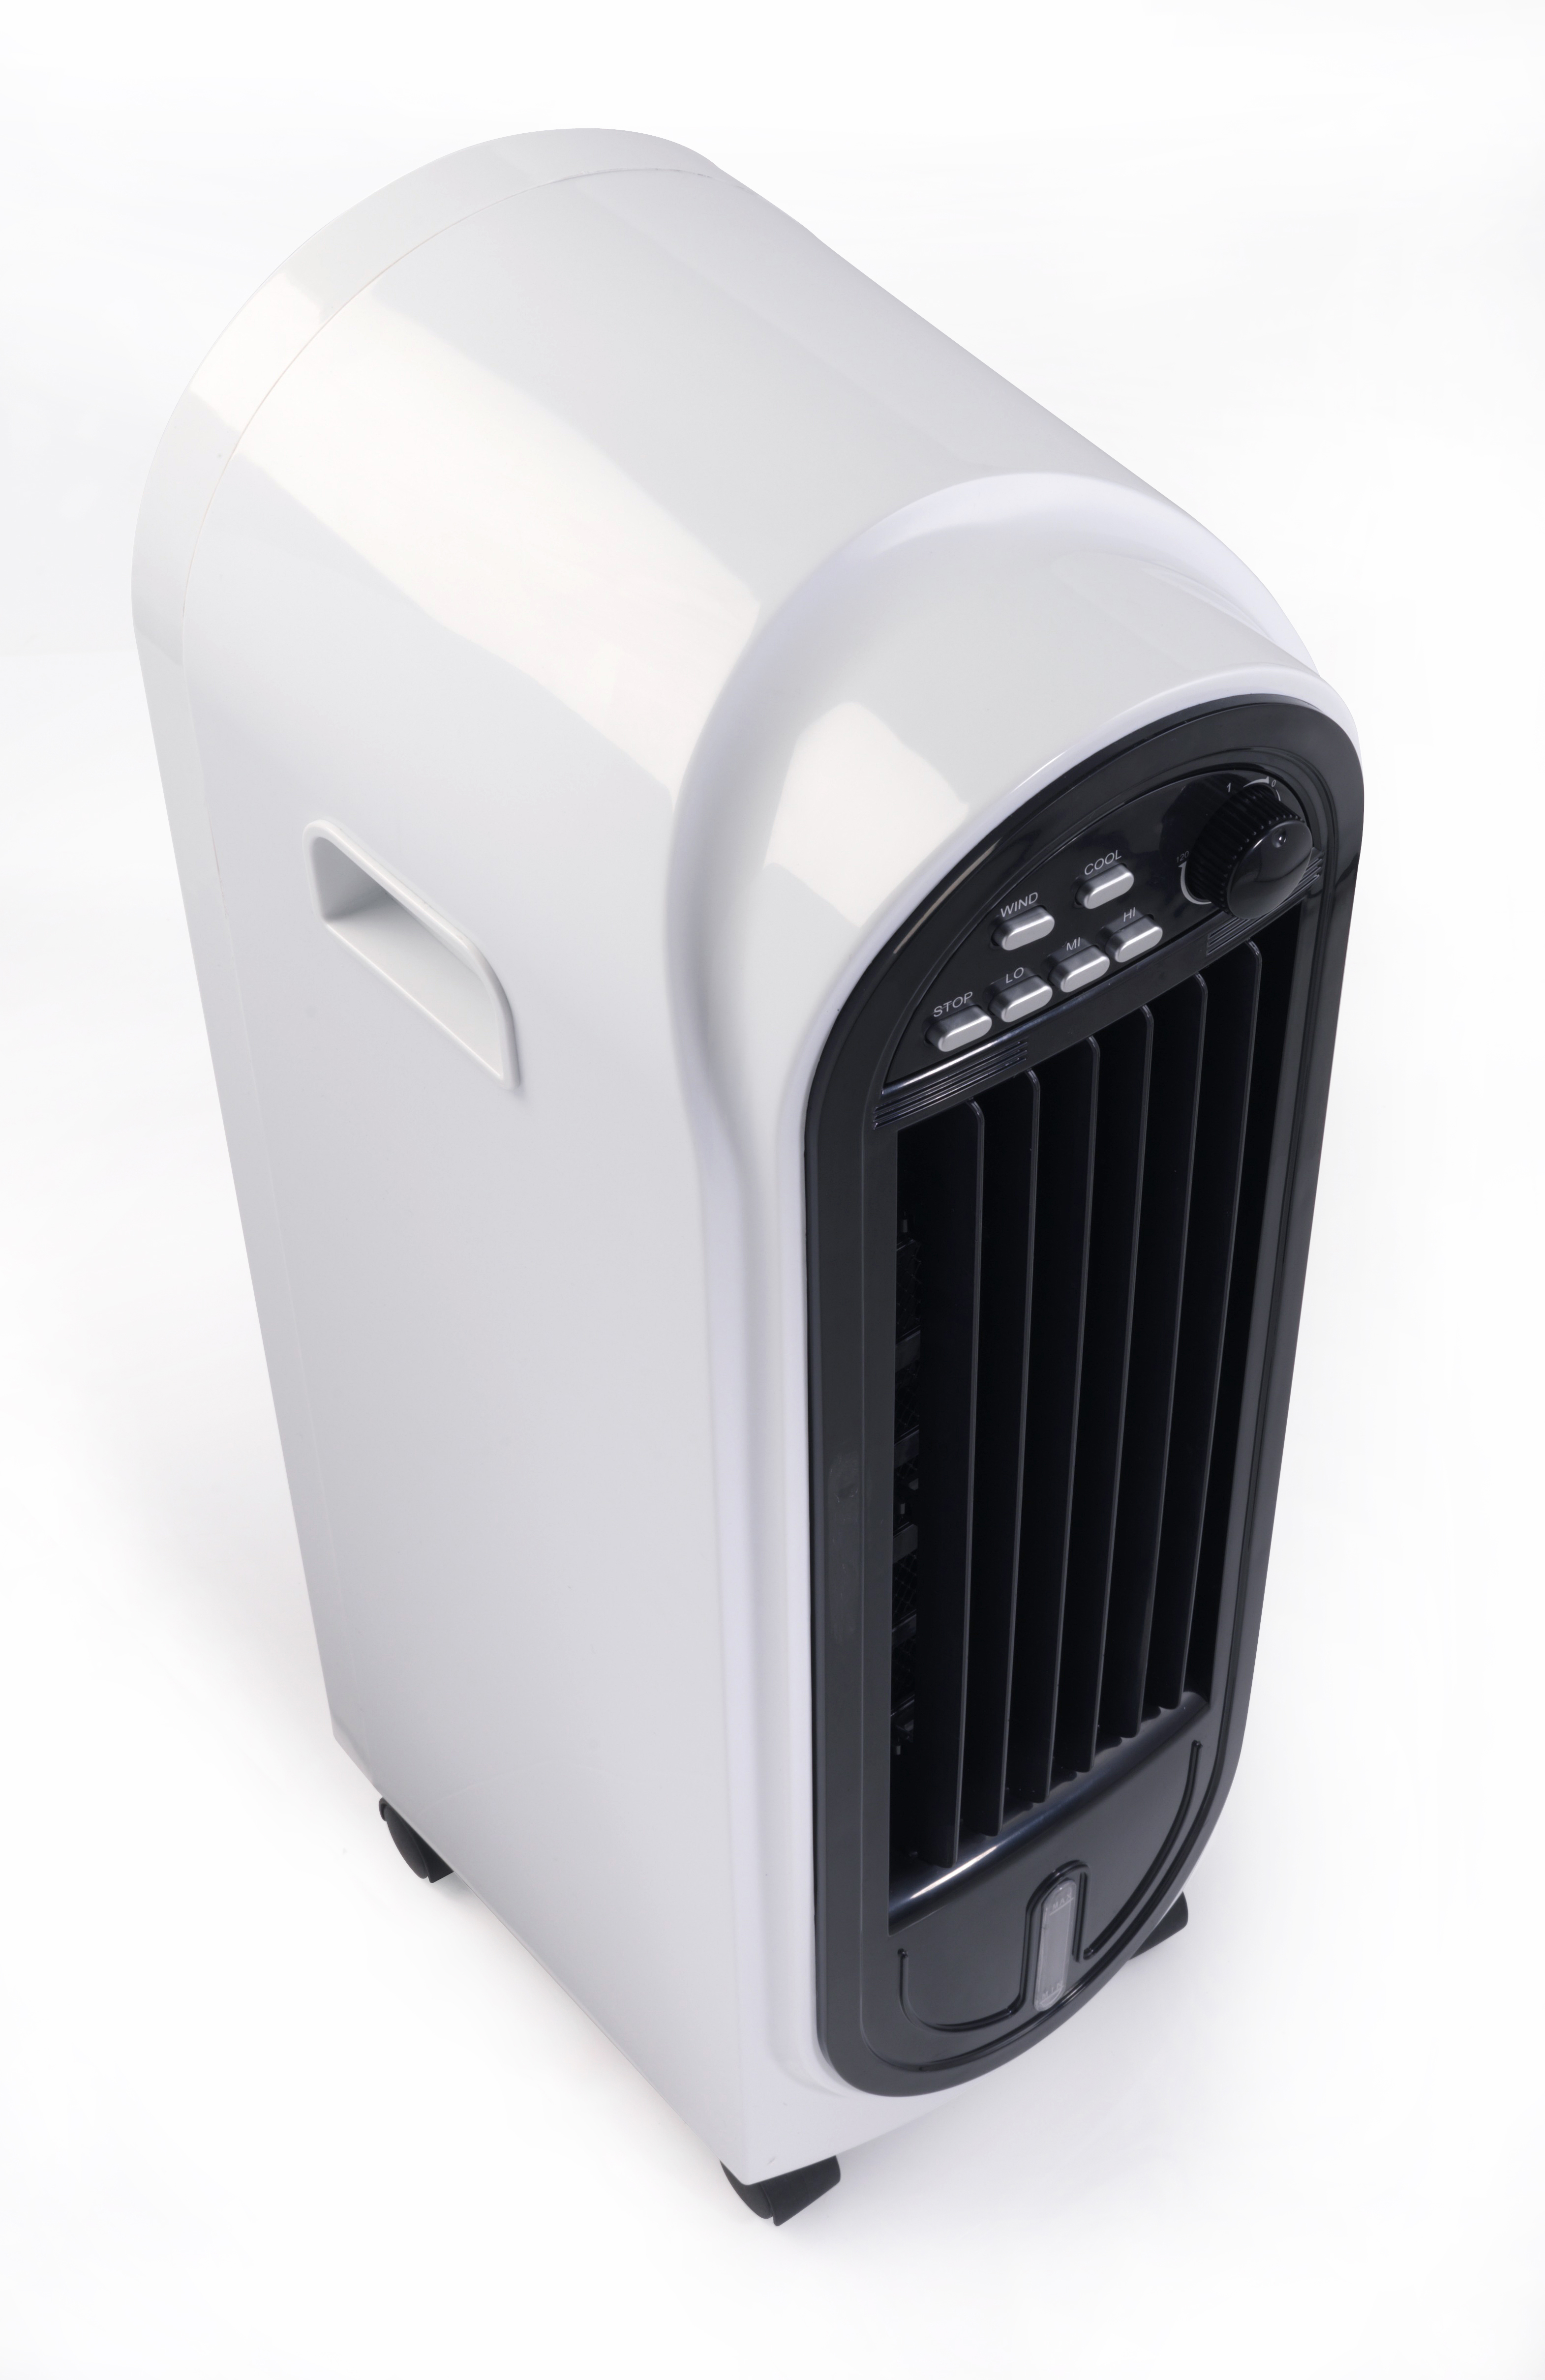 Beldray 3 In 1 Air Cooler Humidifier And Purifier Beldray